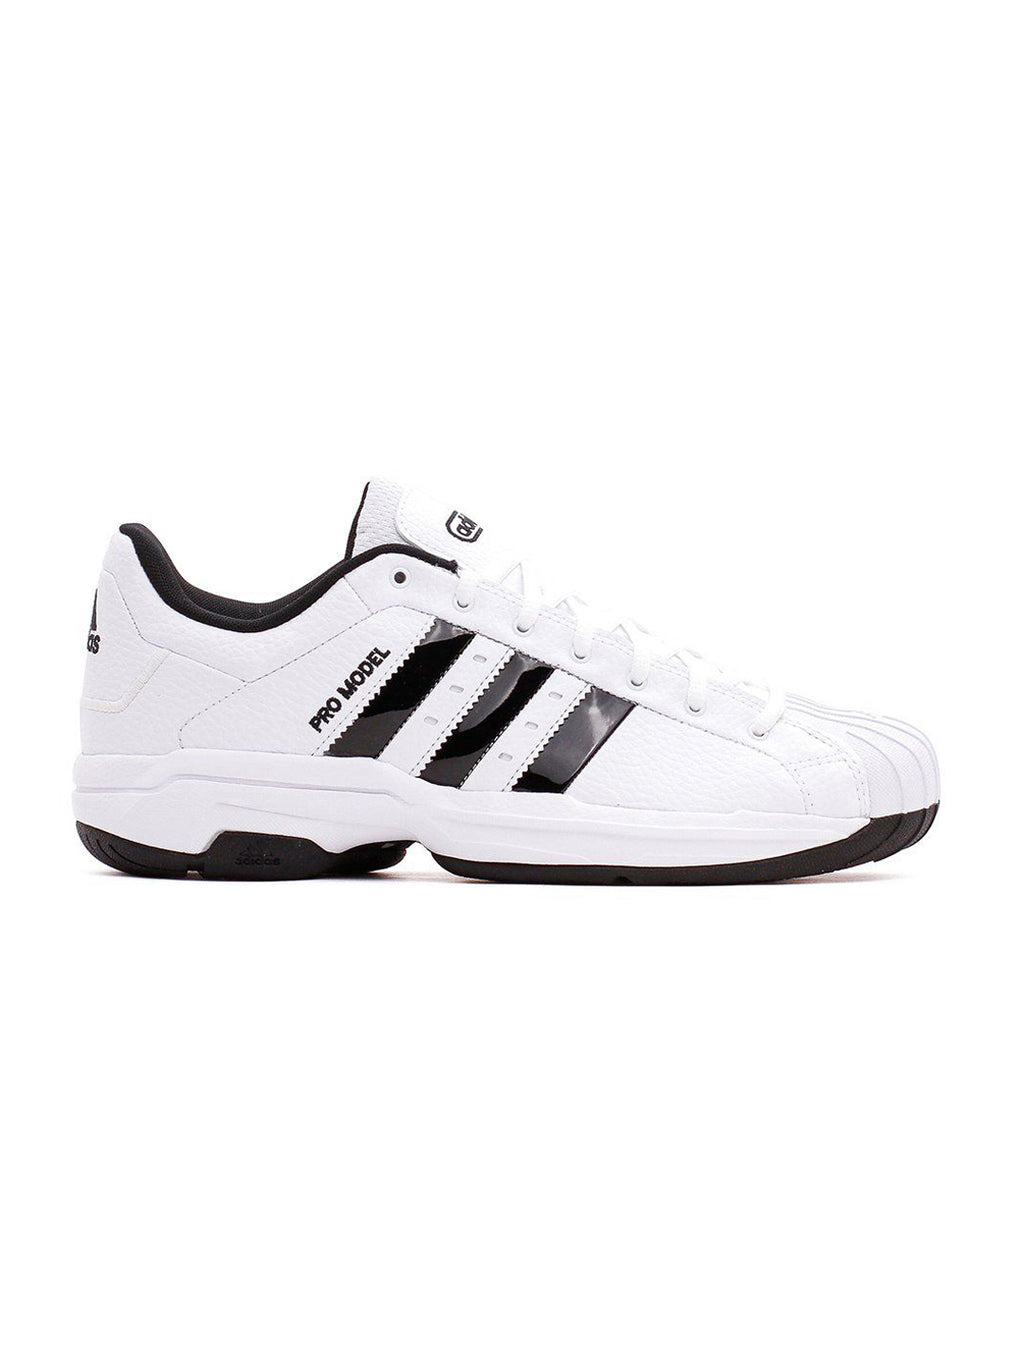 White & Black Pro Model 2G Low Sneakers